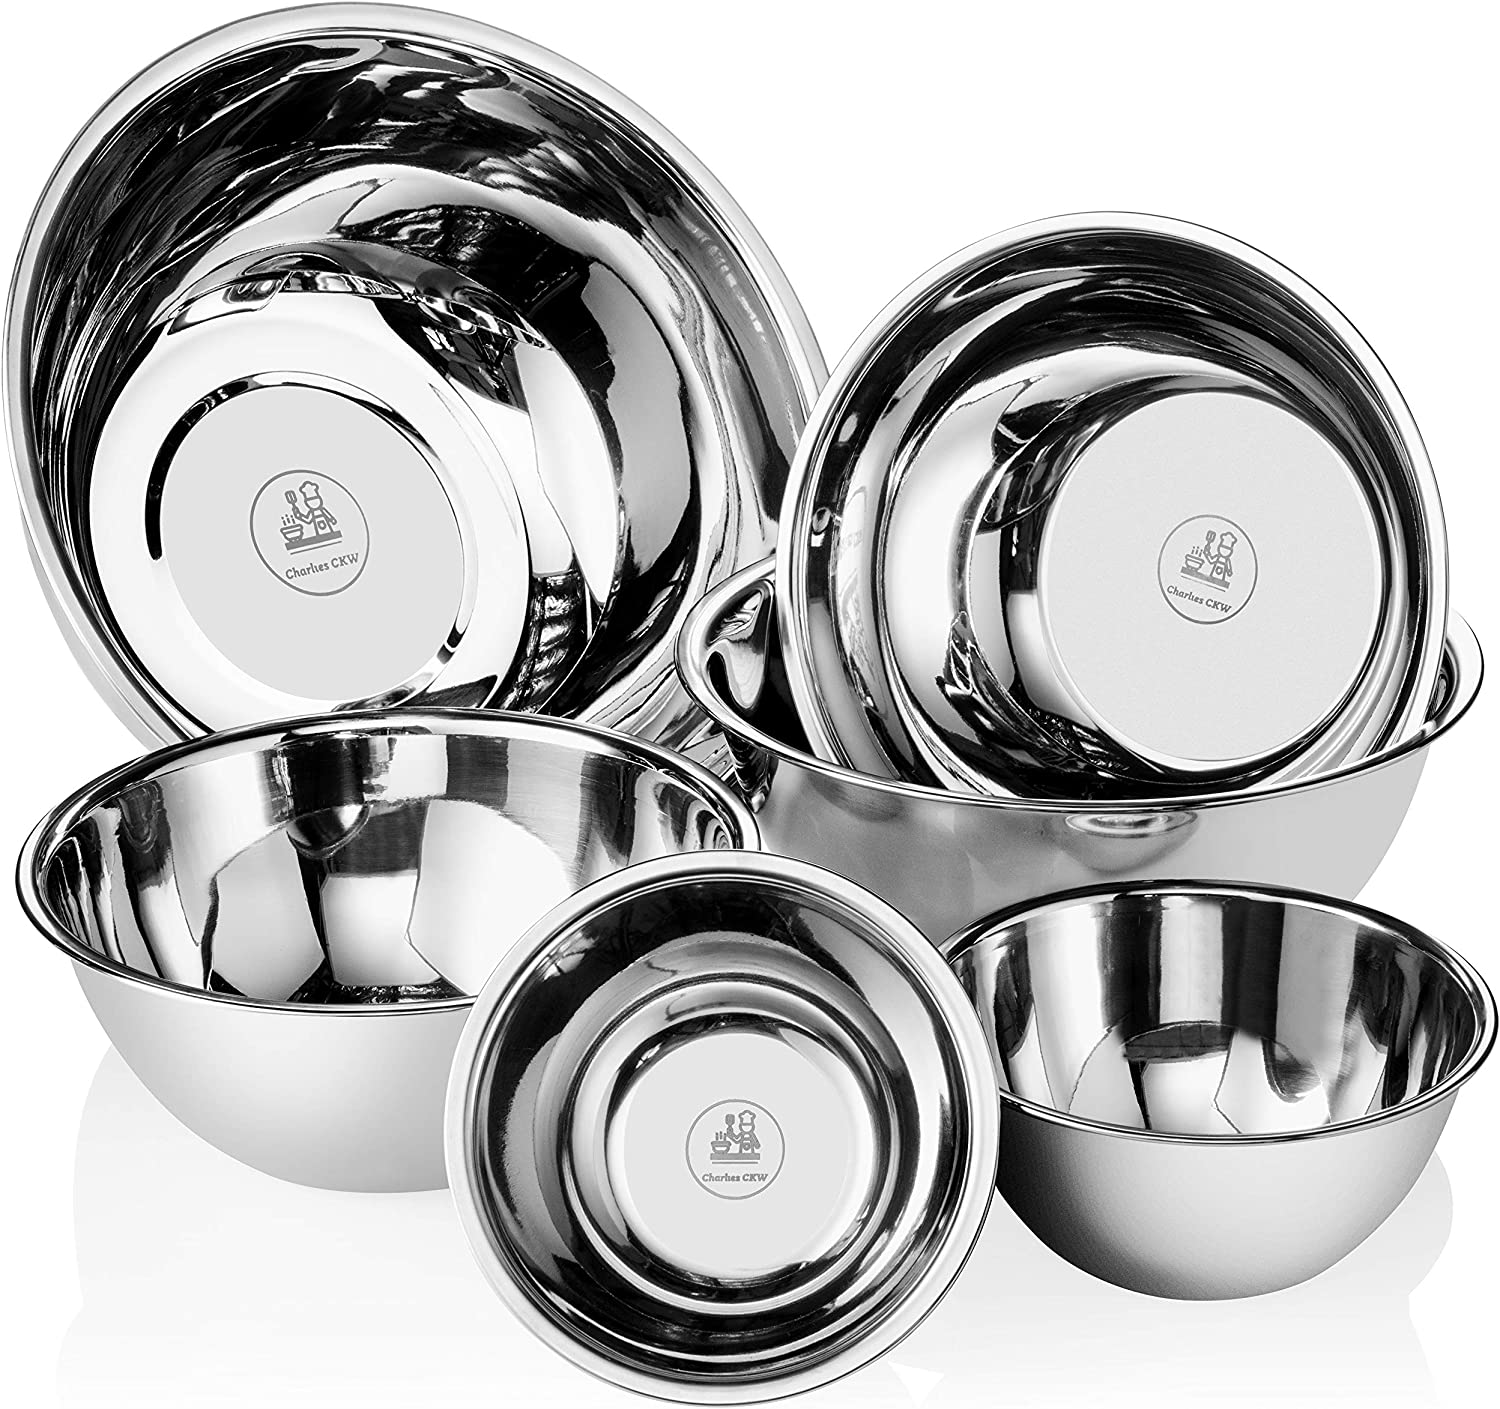 Charlies CKW Premier Stainless Steel Mixing Bowls Set of 6 including 3/4, 1.5, 3, 4, 5, and 8 qt Polished Mirror Finish Nesting Bowls Convenient Cookware for Grilling, Cooking, Baking, Gifts, and more